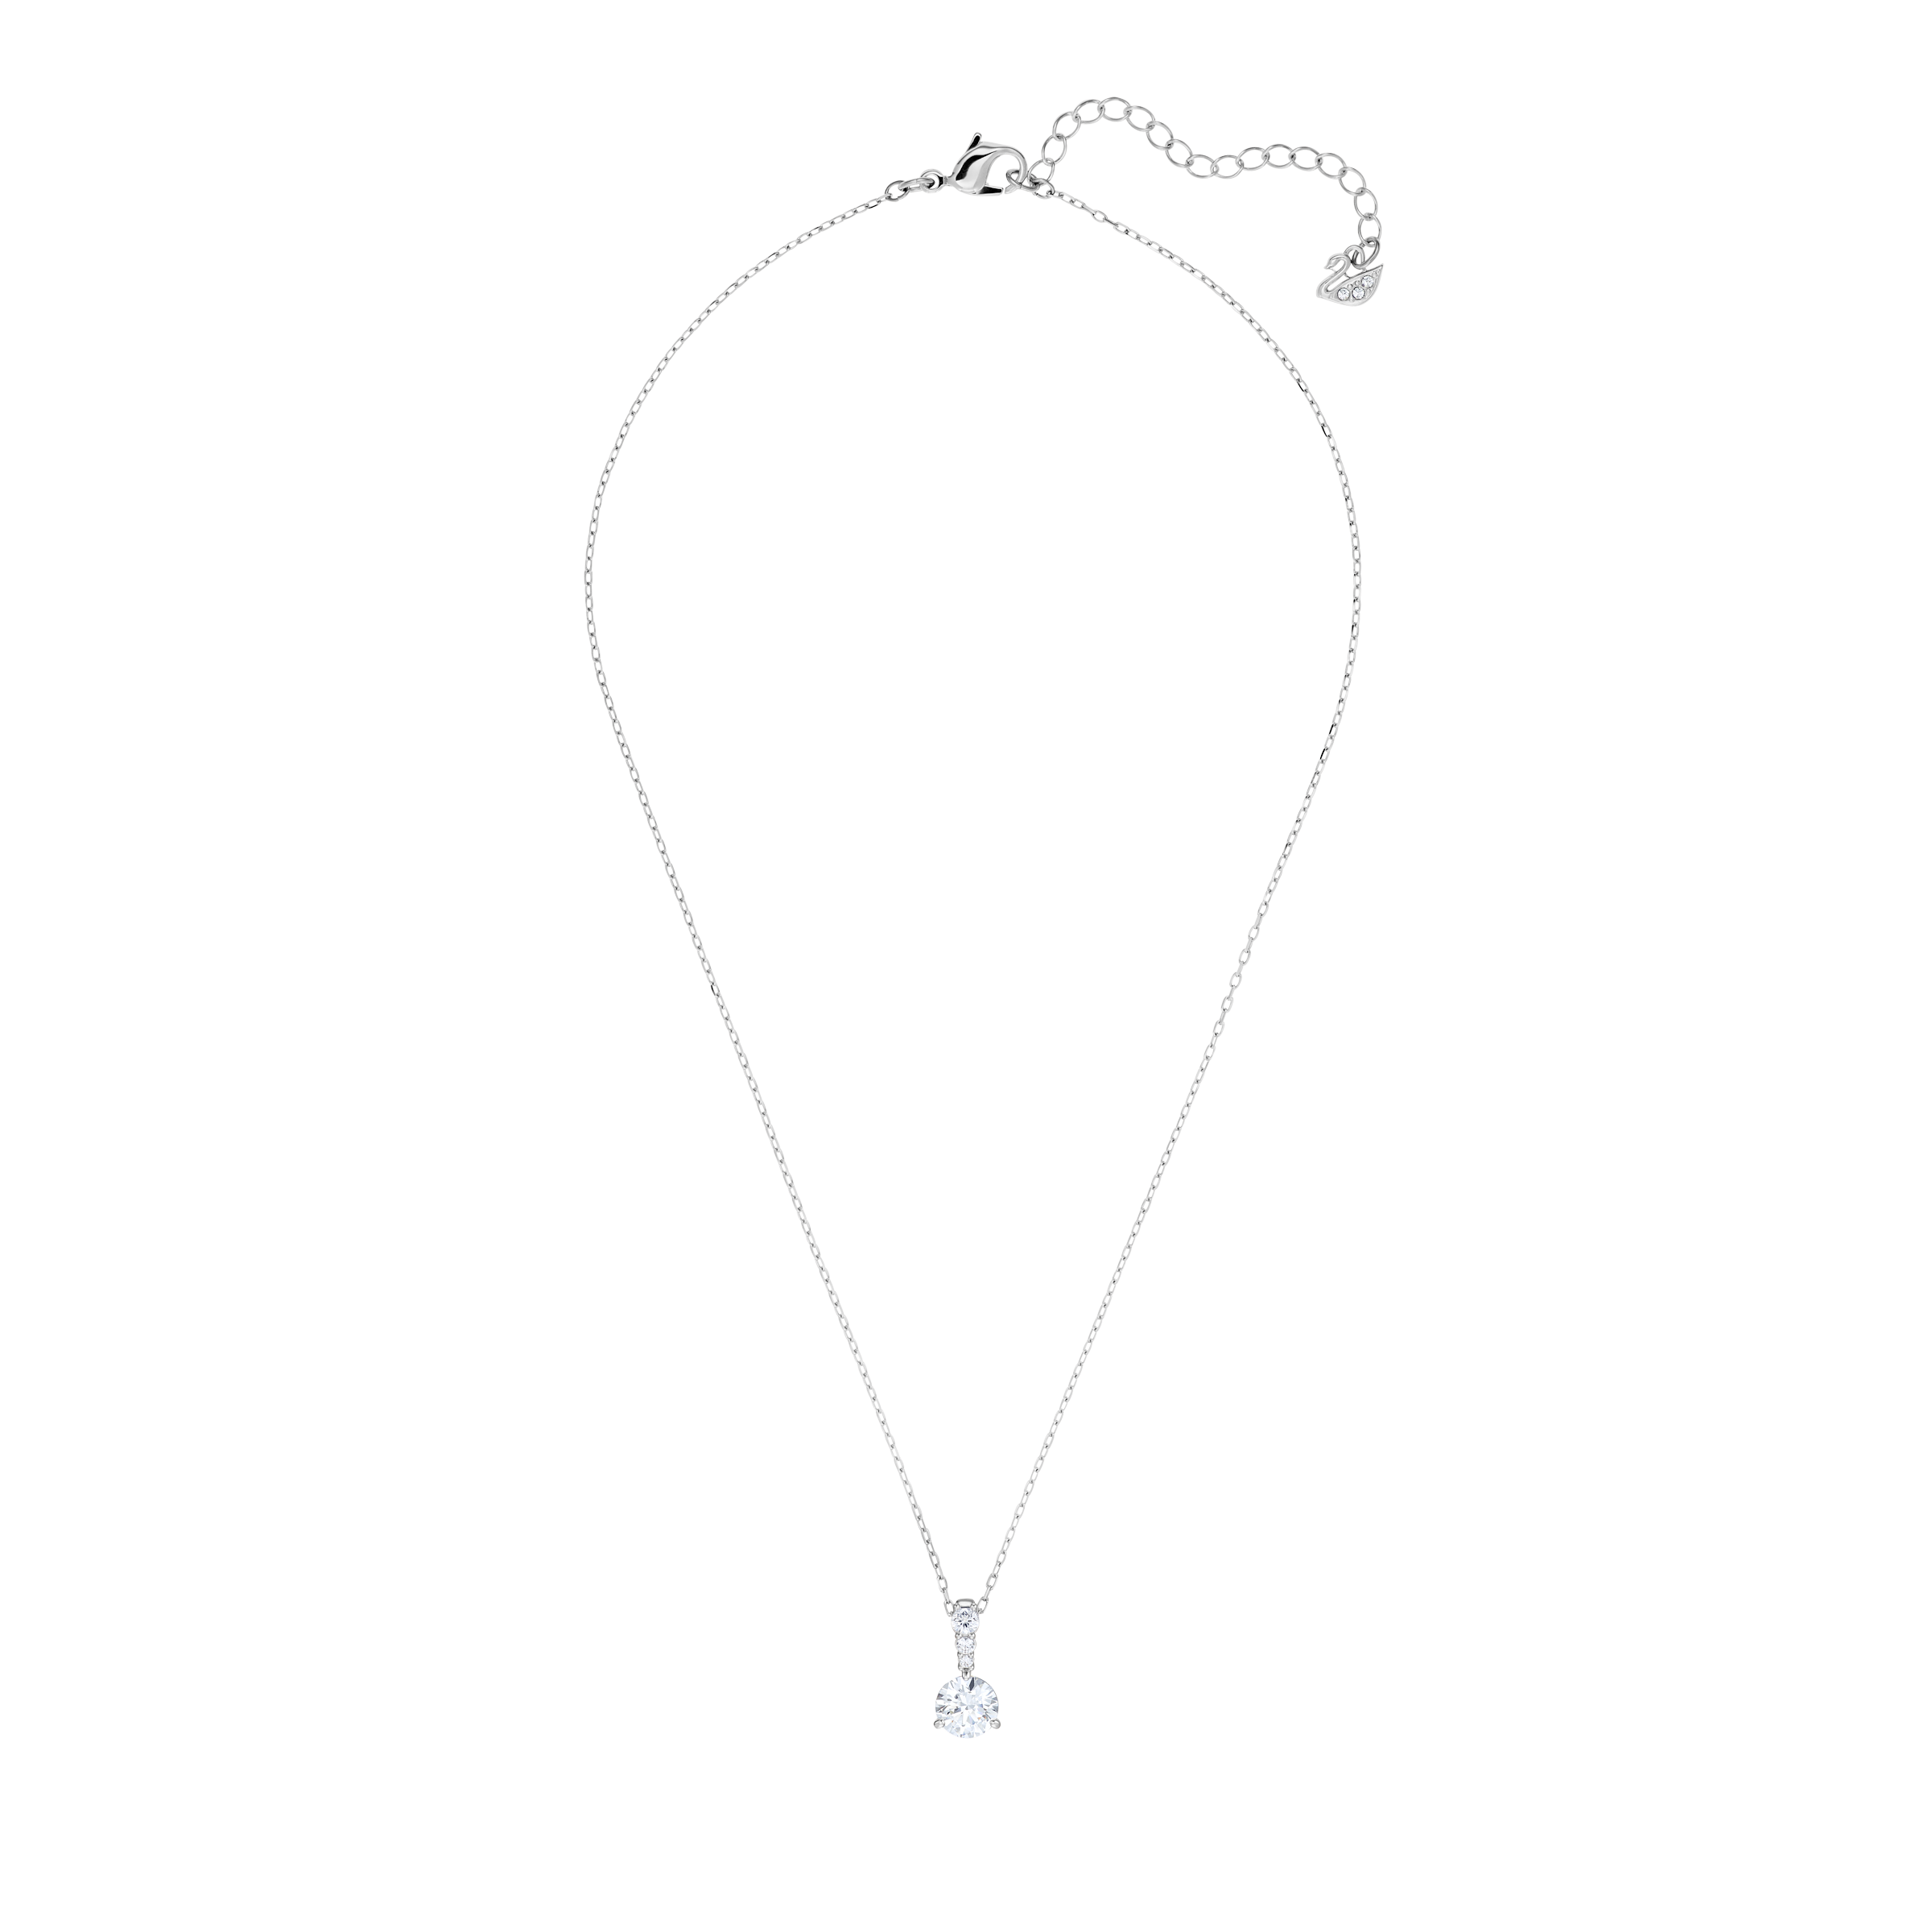 Solitaire Pendant, White, Rhodium plated